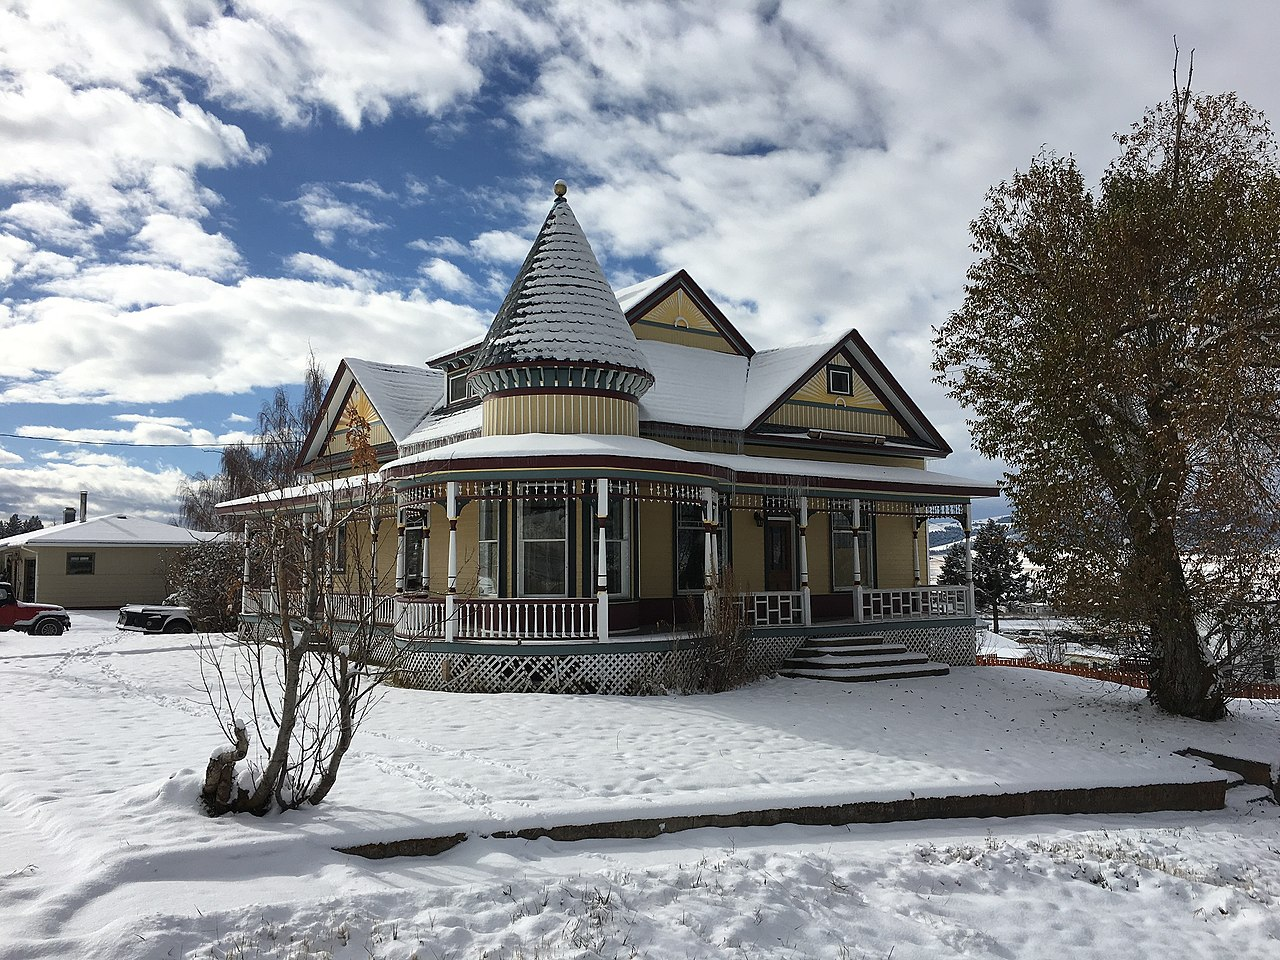 The M.E. Doe House was built in 1902 and is a fine example of late Victorian architecture.